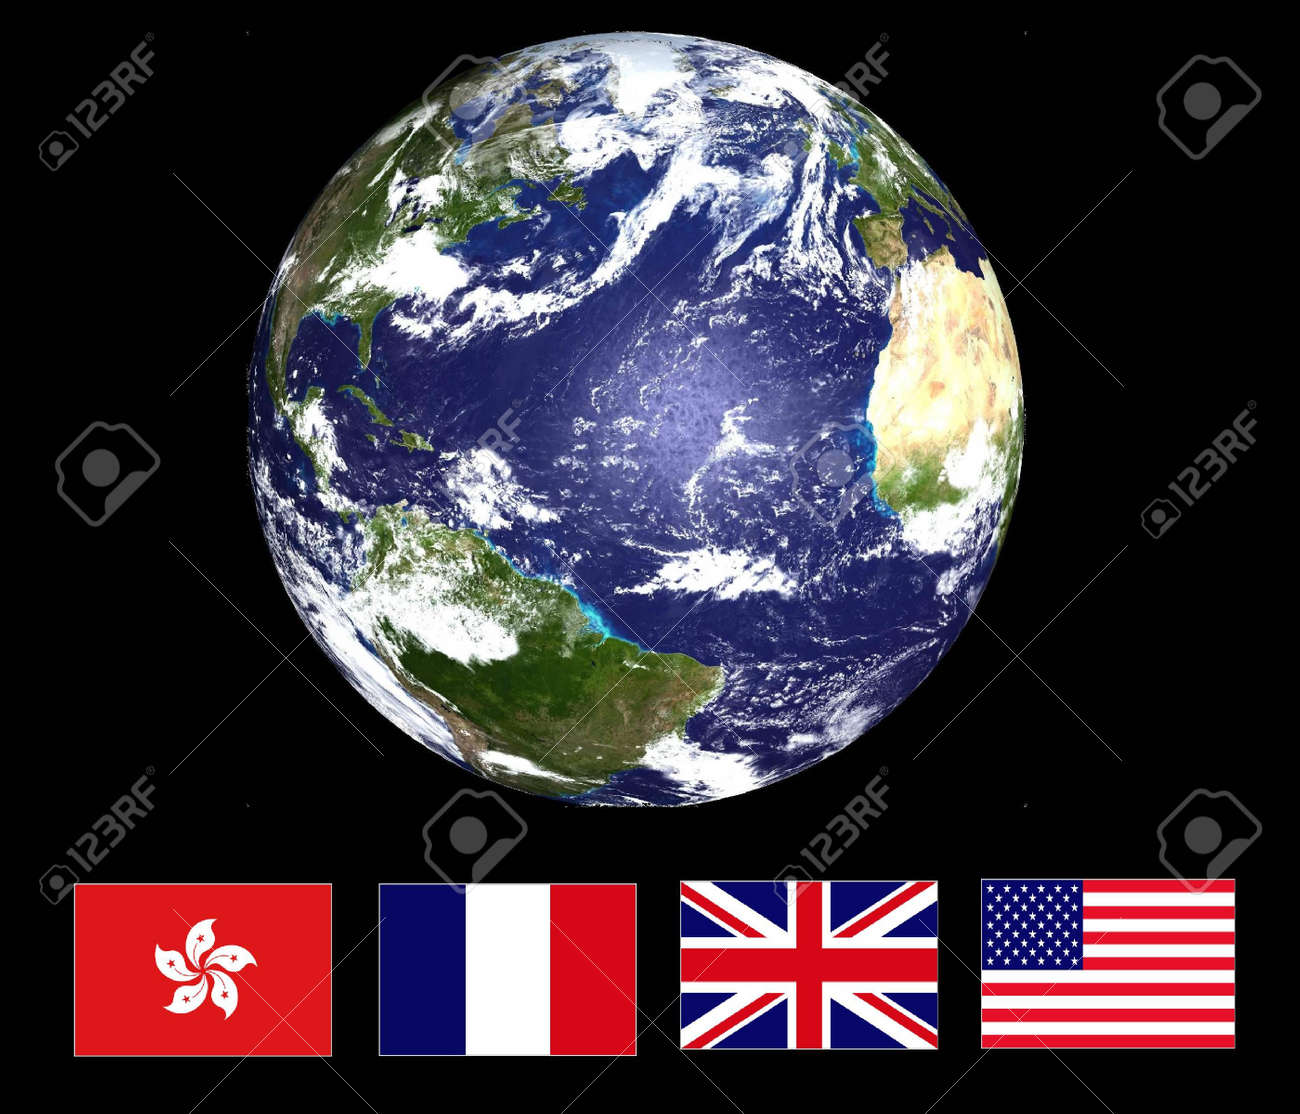 Earth & National Flags Stock Photo - 2983177